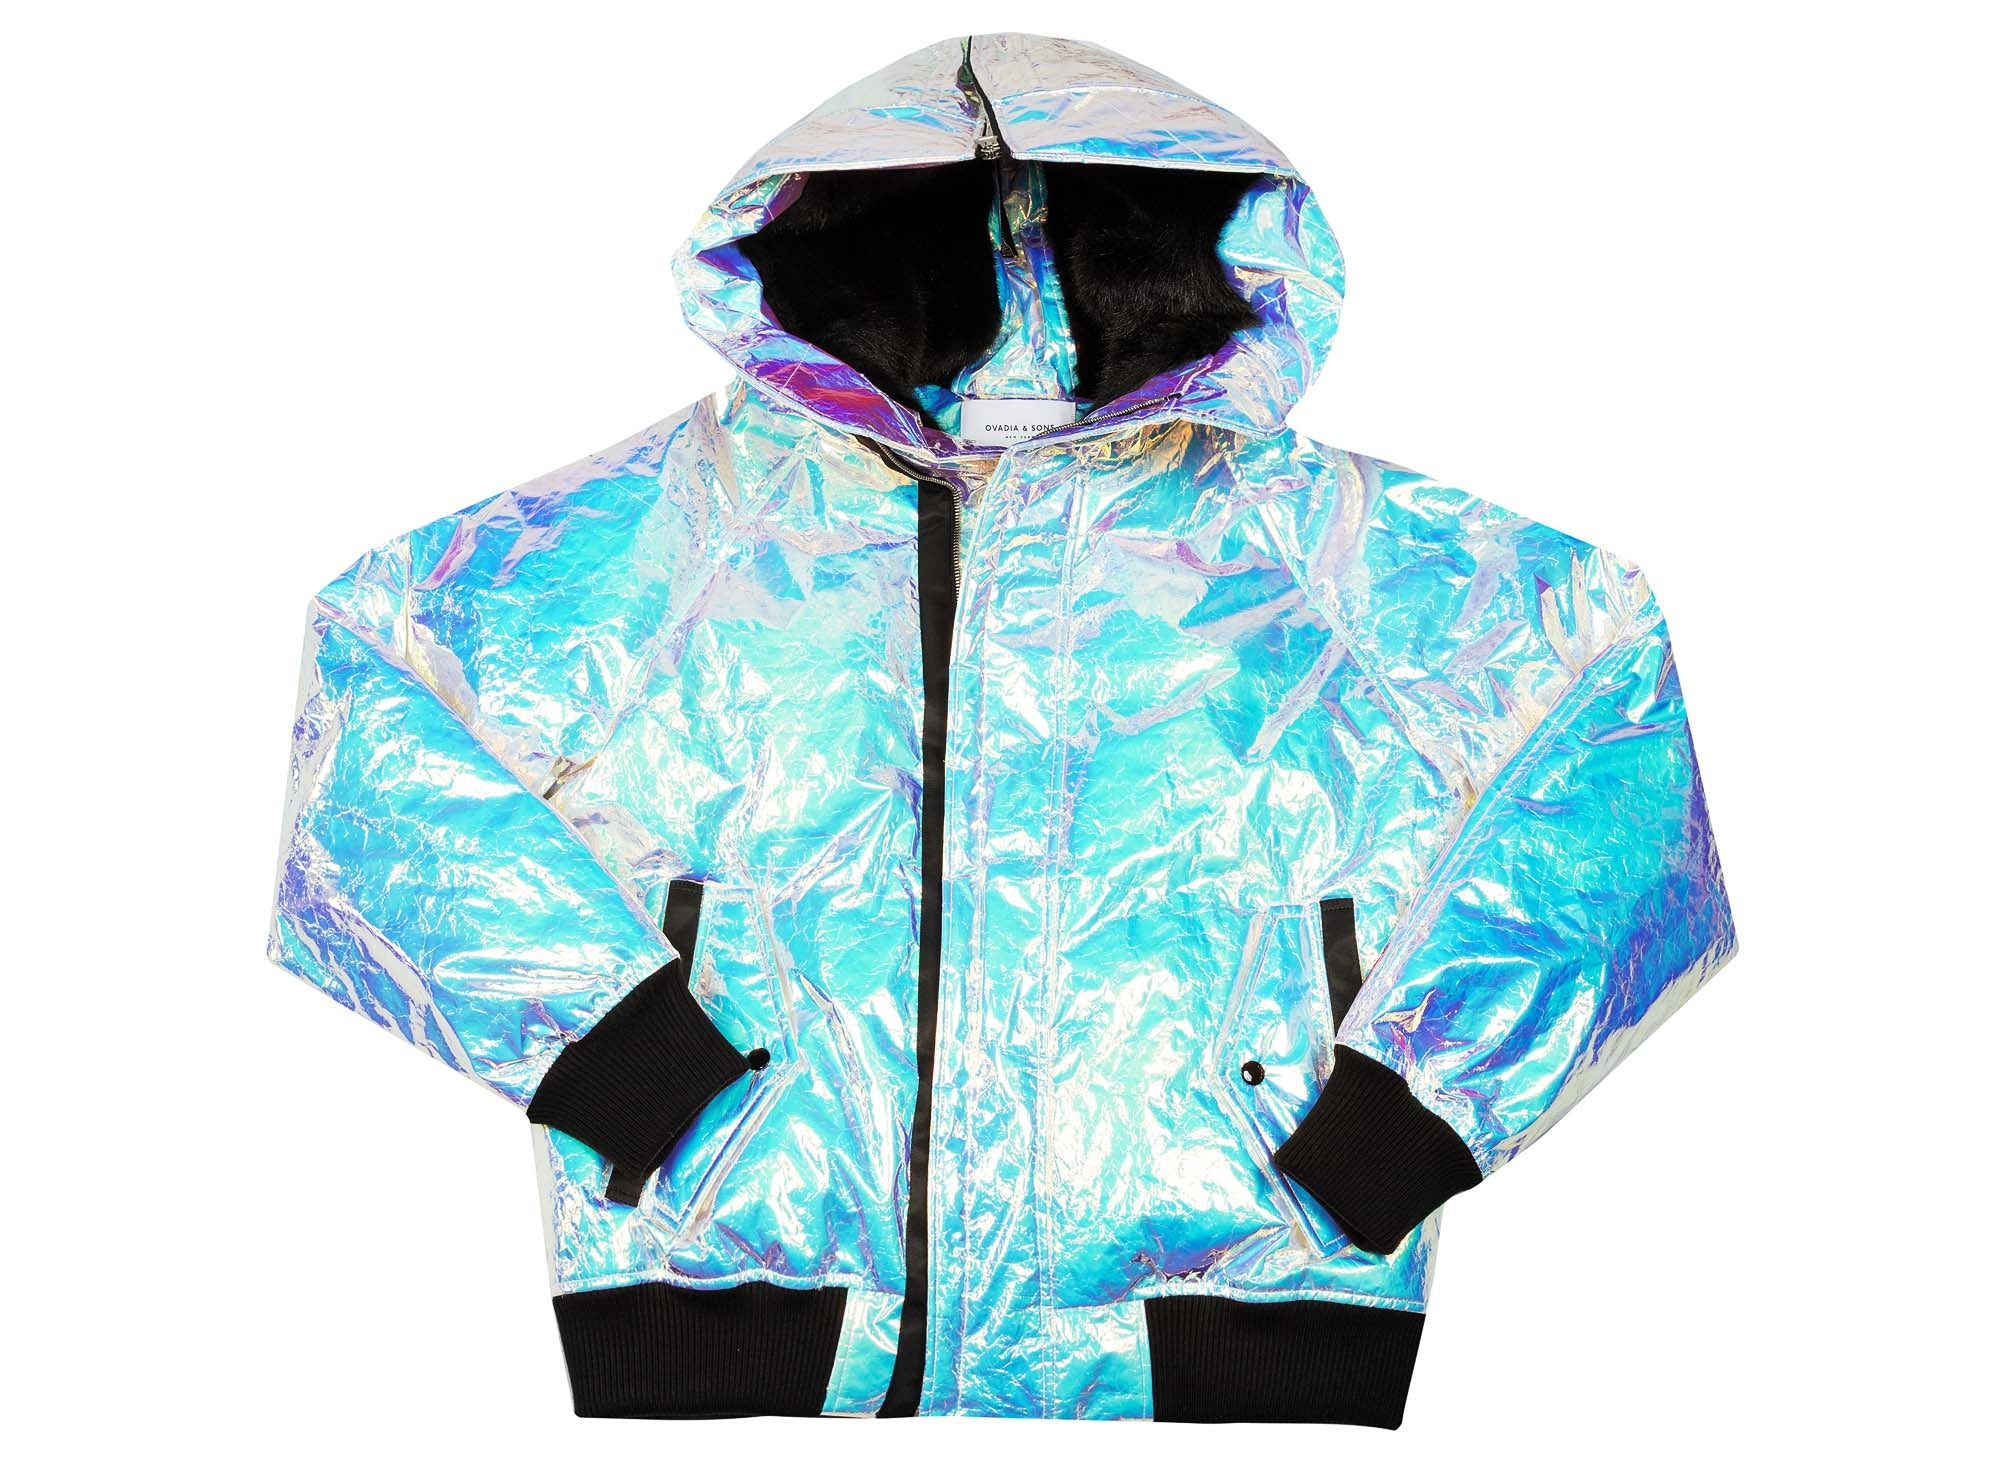 Ovadia & Sons Hologram Jacket